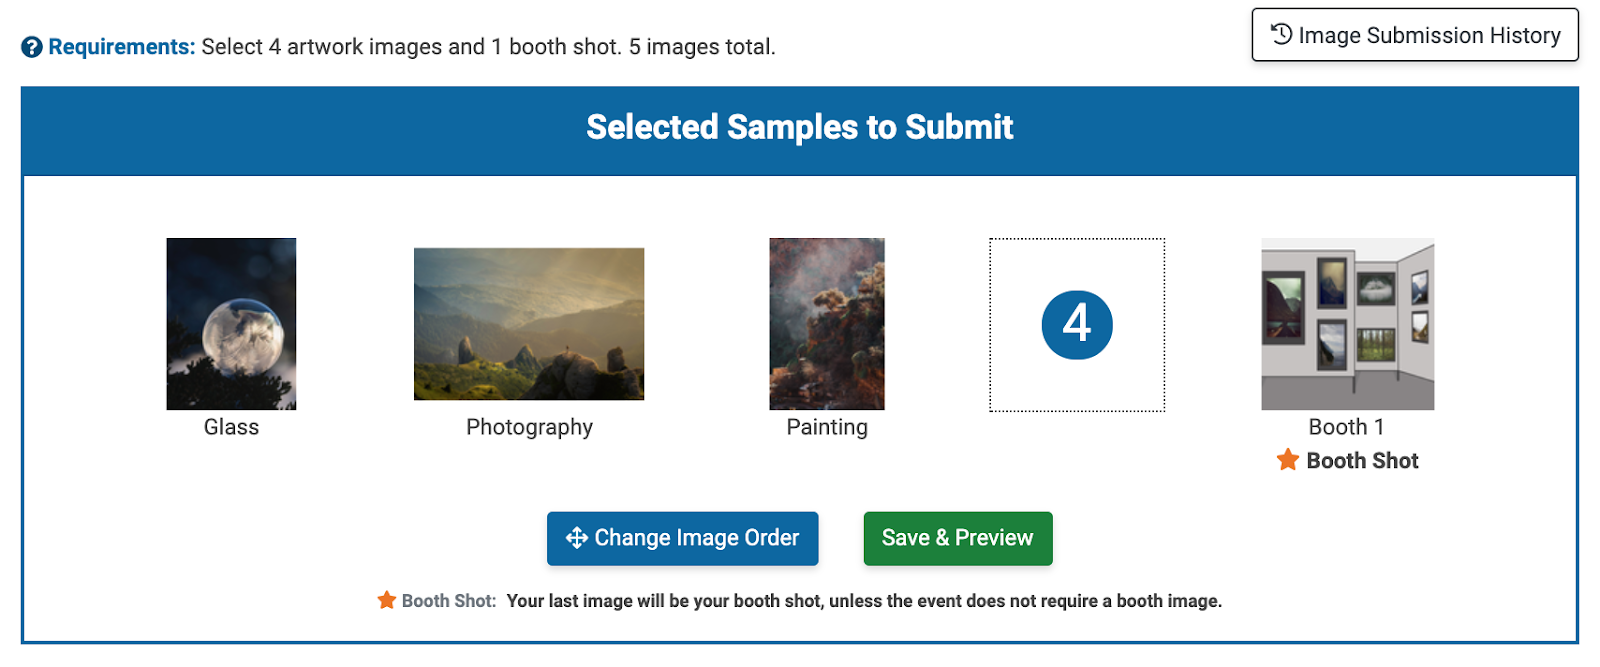 Image of the artist side of ZAPP, where applicants and add images to their applications